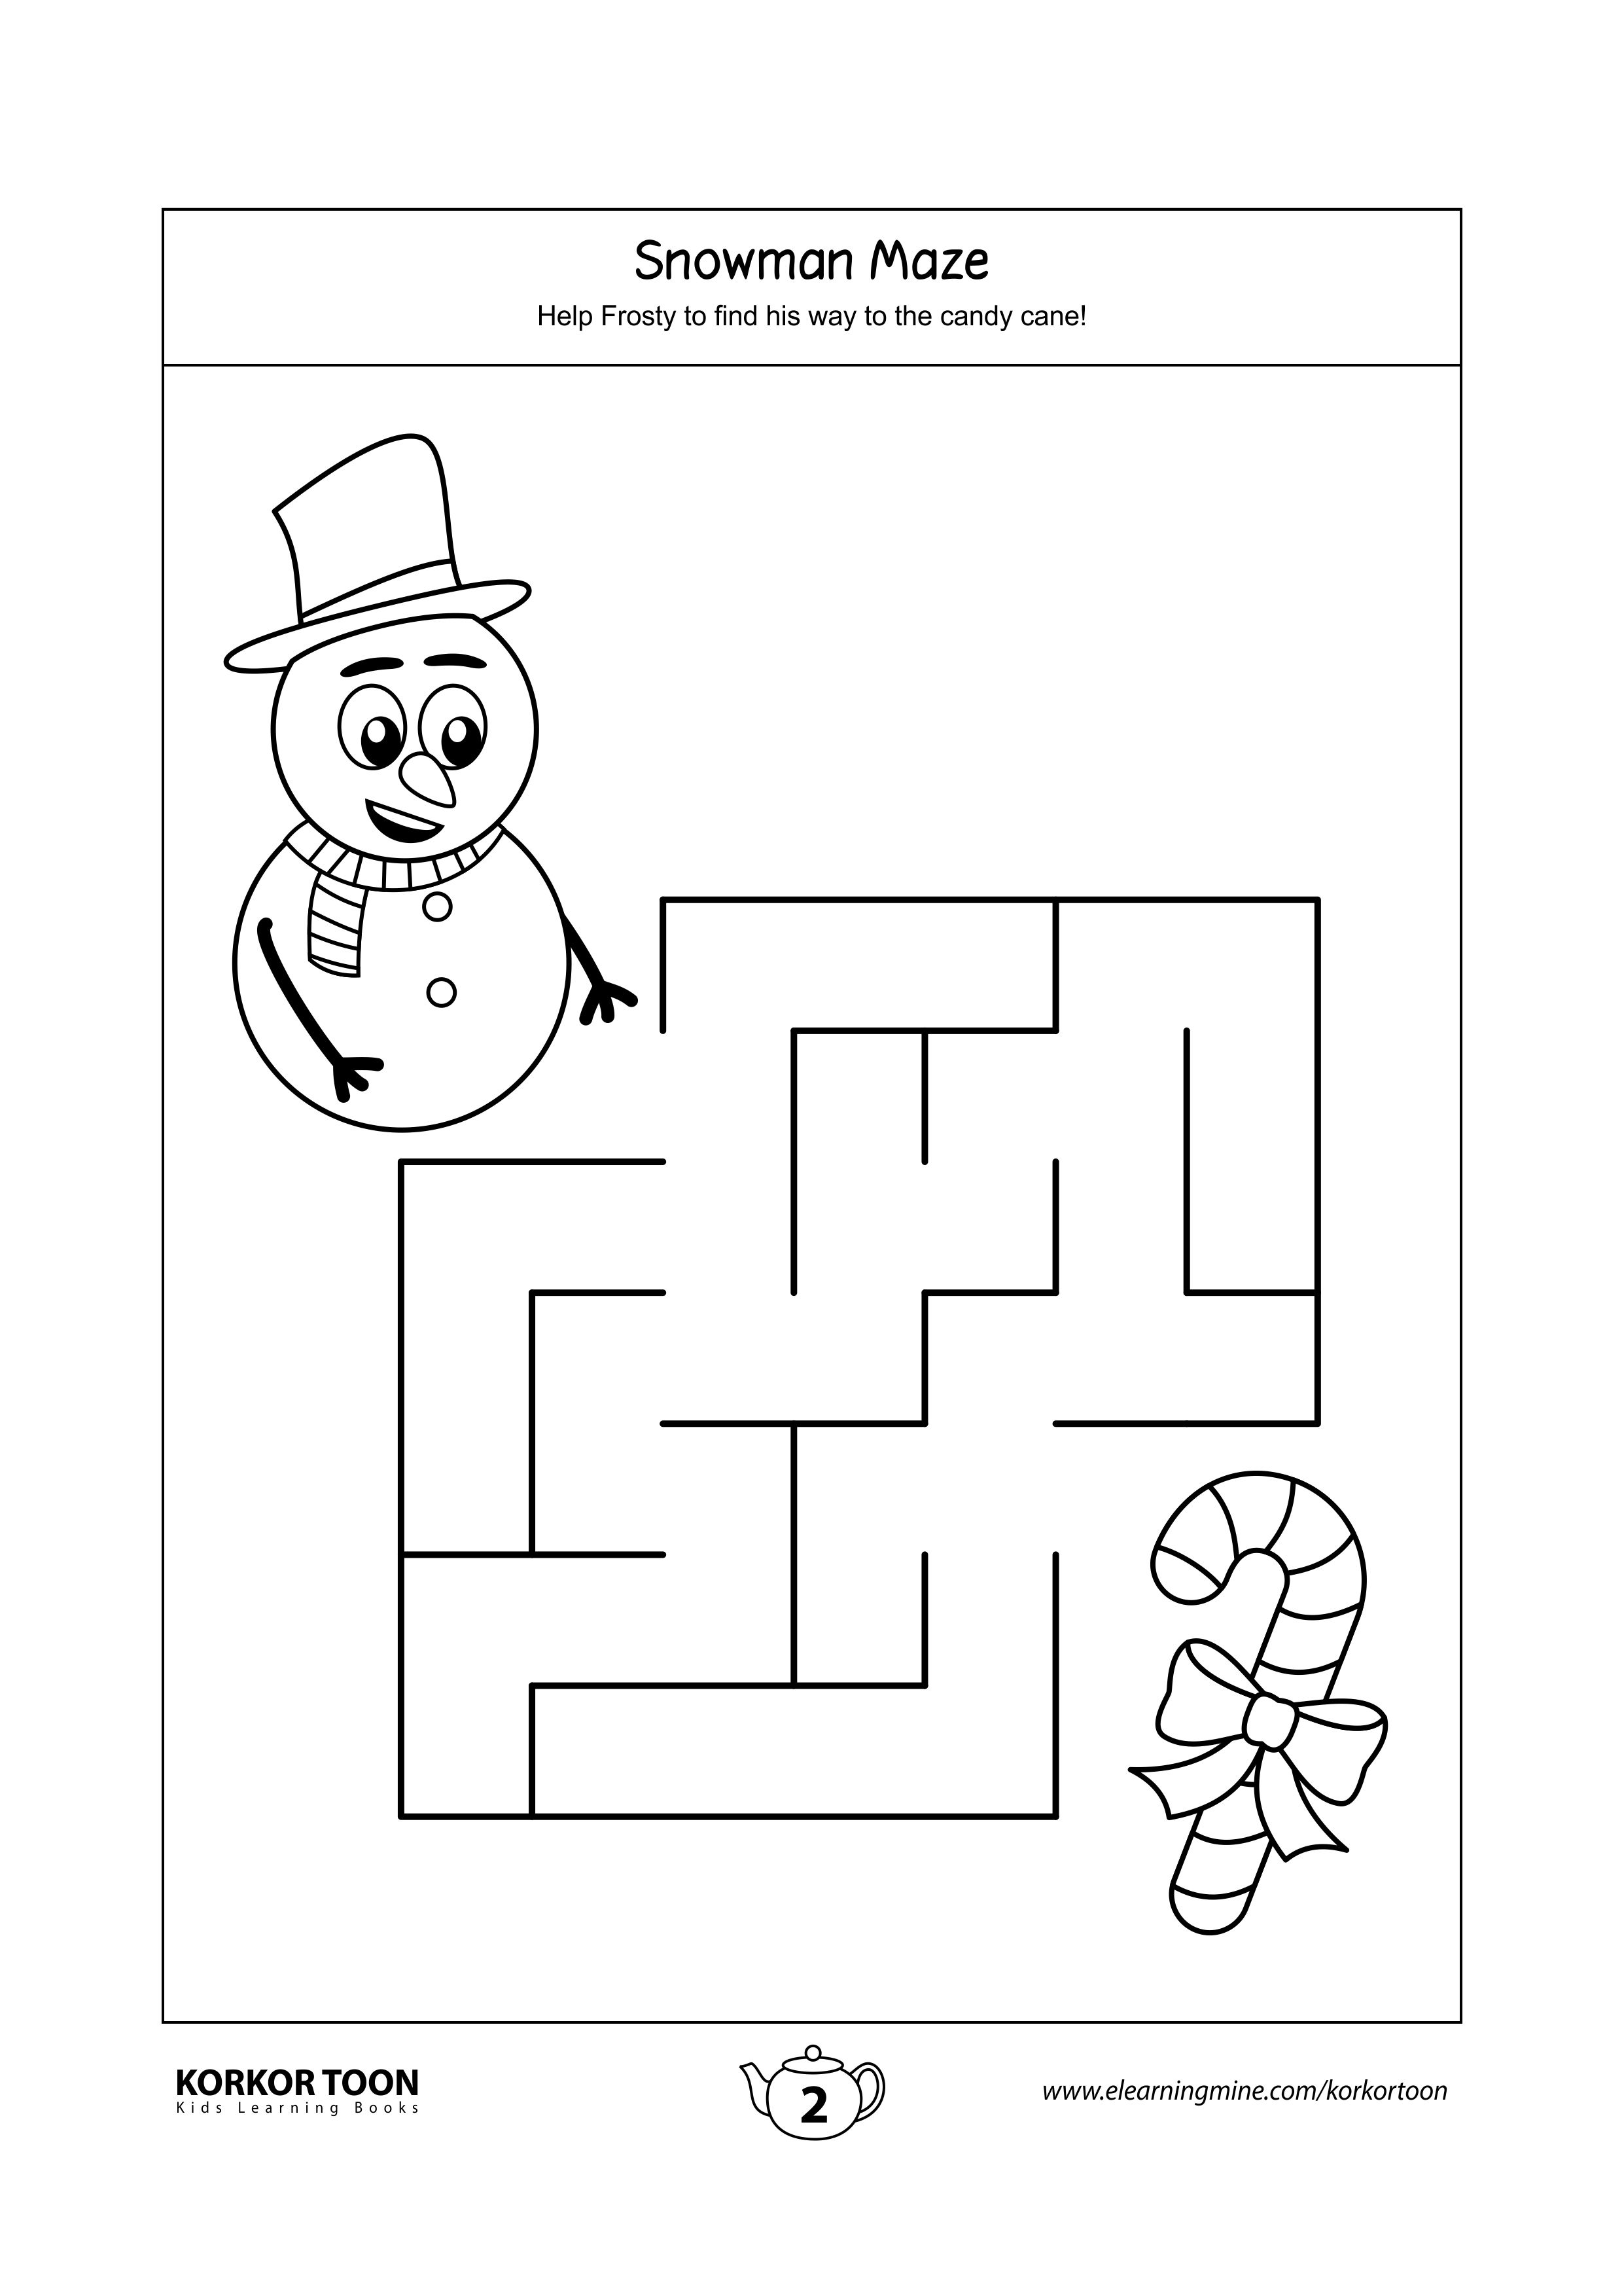 Snowman Maze Game For Kids